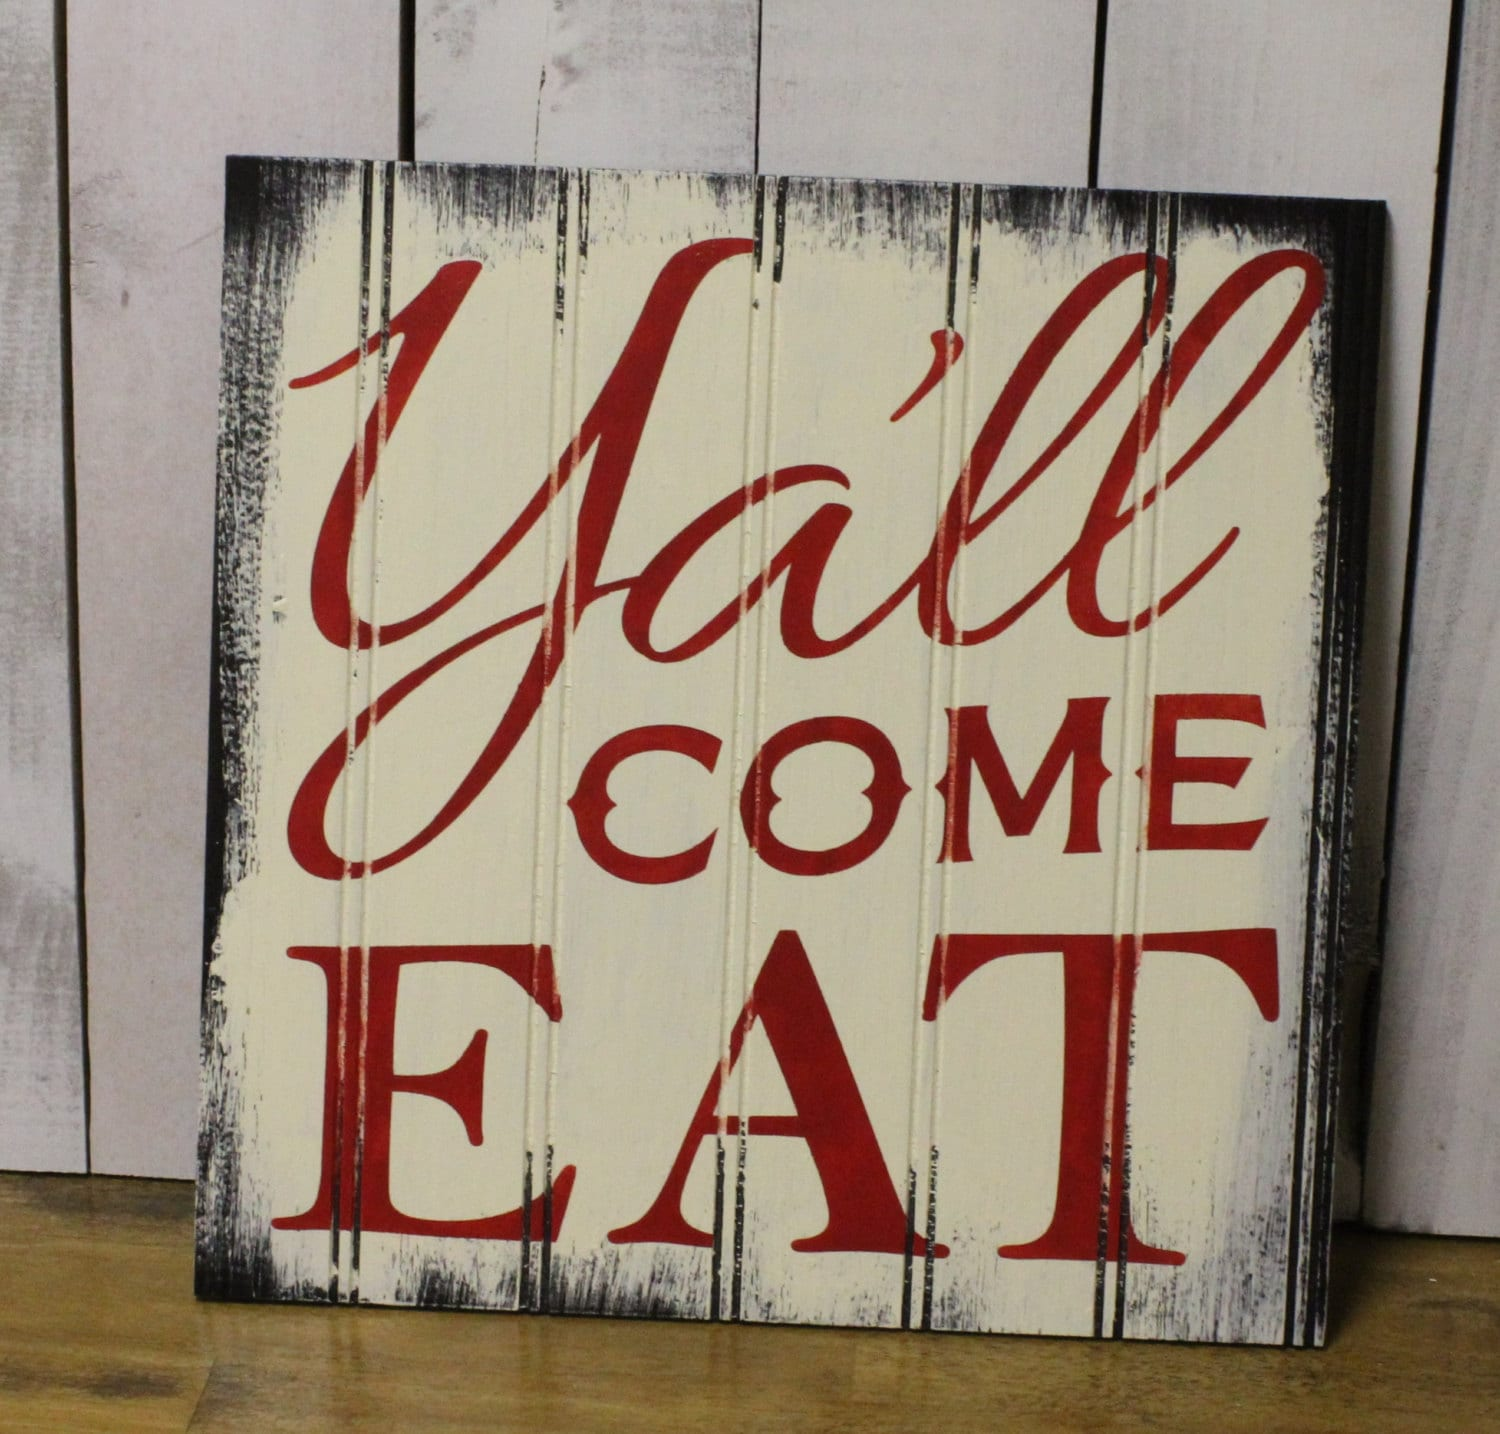 farmers art supplies traditional decor with sign farmland wall also super arrow bandit at signs dramatic debonair rustic cheap delight plus notable gloriou wood wooden fast together neon needed kitchen relieving